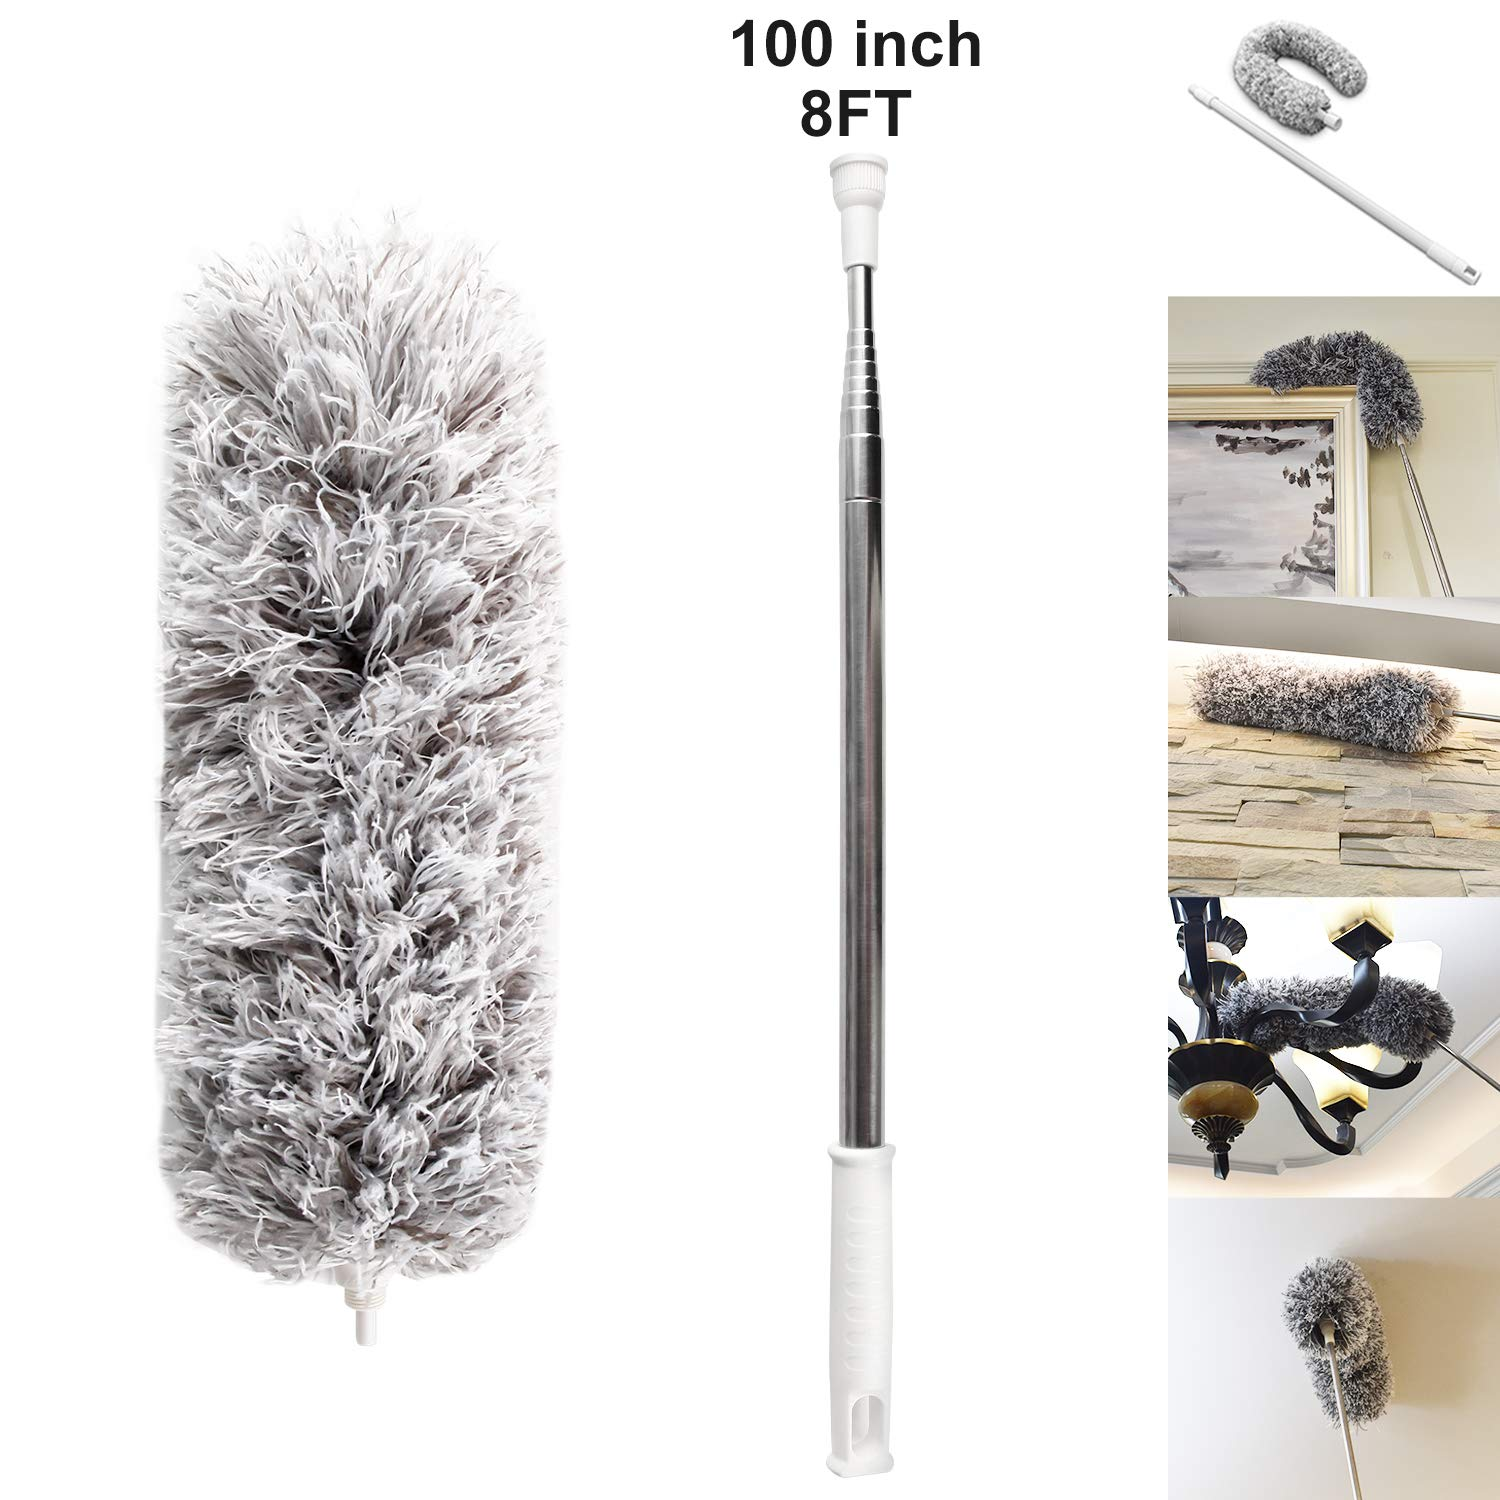 Yafook Microfiber Duster 100'' Ceiling Fan with with Stainless Steel Extension Long Extendable Pole Washable Bendable for Cleaning, High Cobweb Wall Dusting Wet, Interior Roof